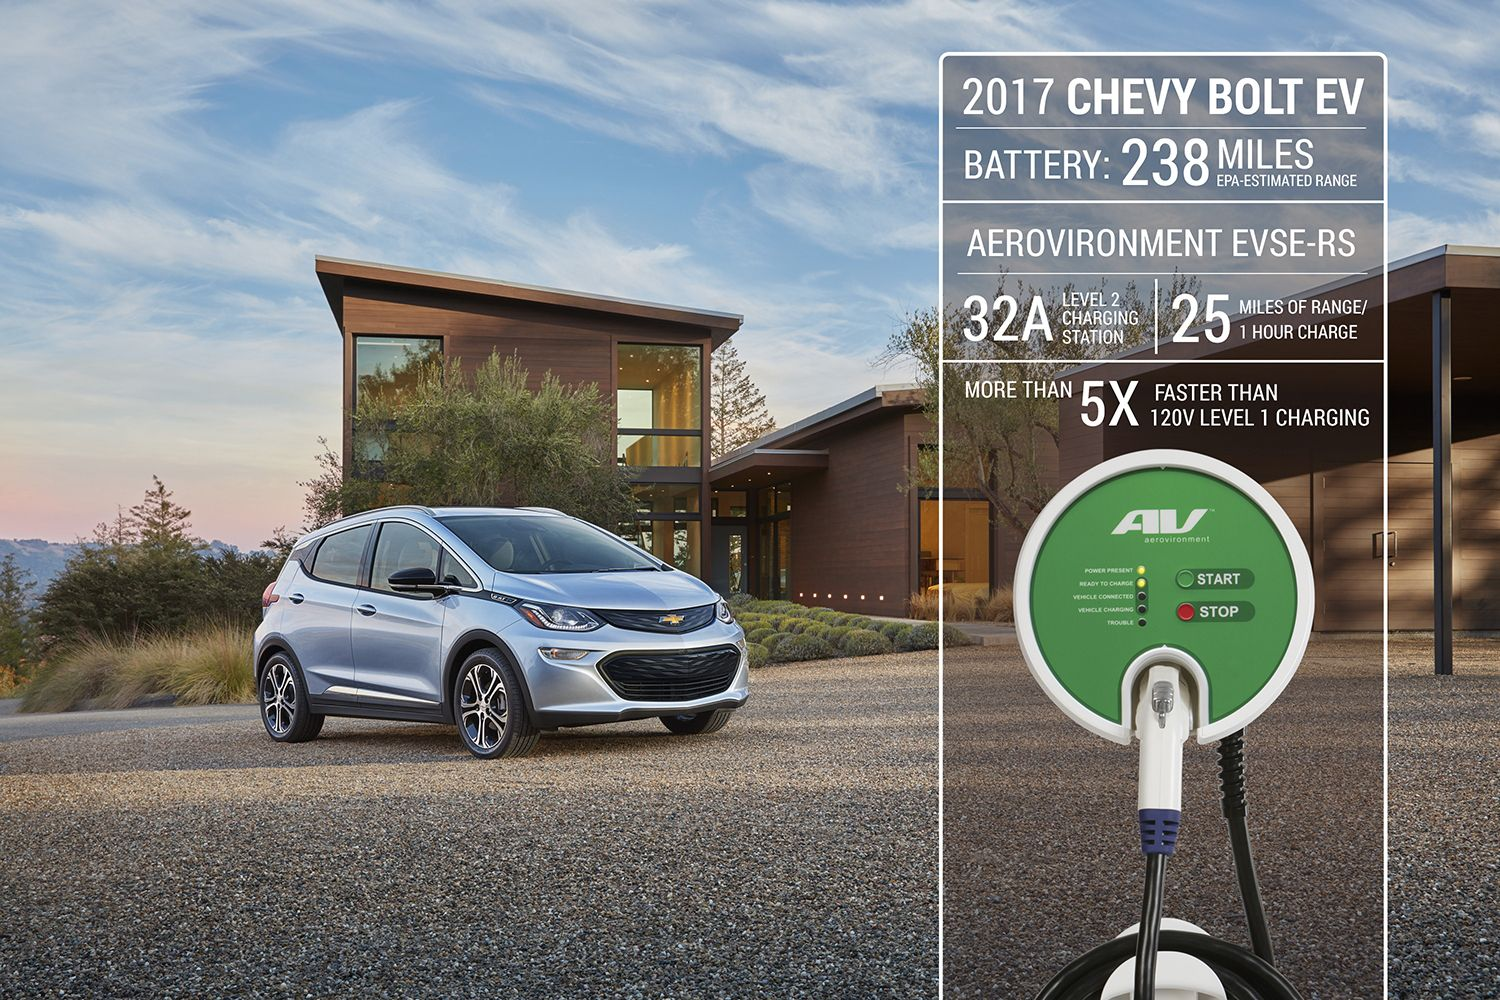 Gm Selects Aerovironment Evse Rs For Official 2017 Chevy Bolt Ev